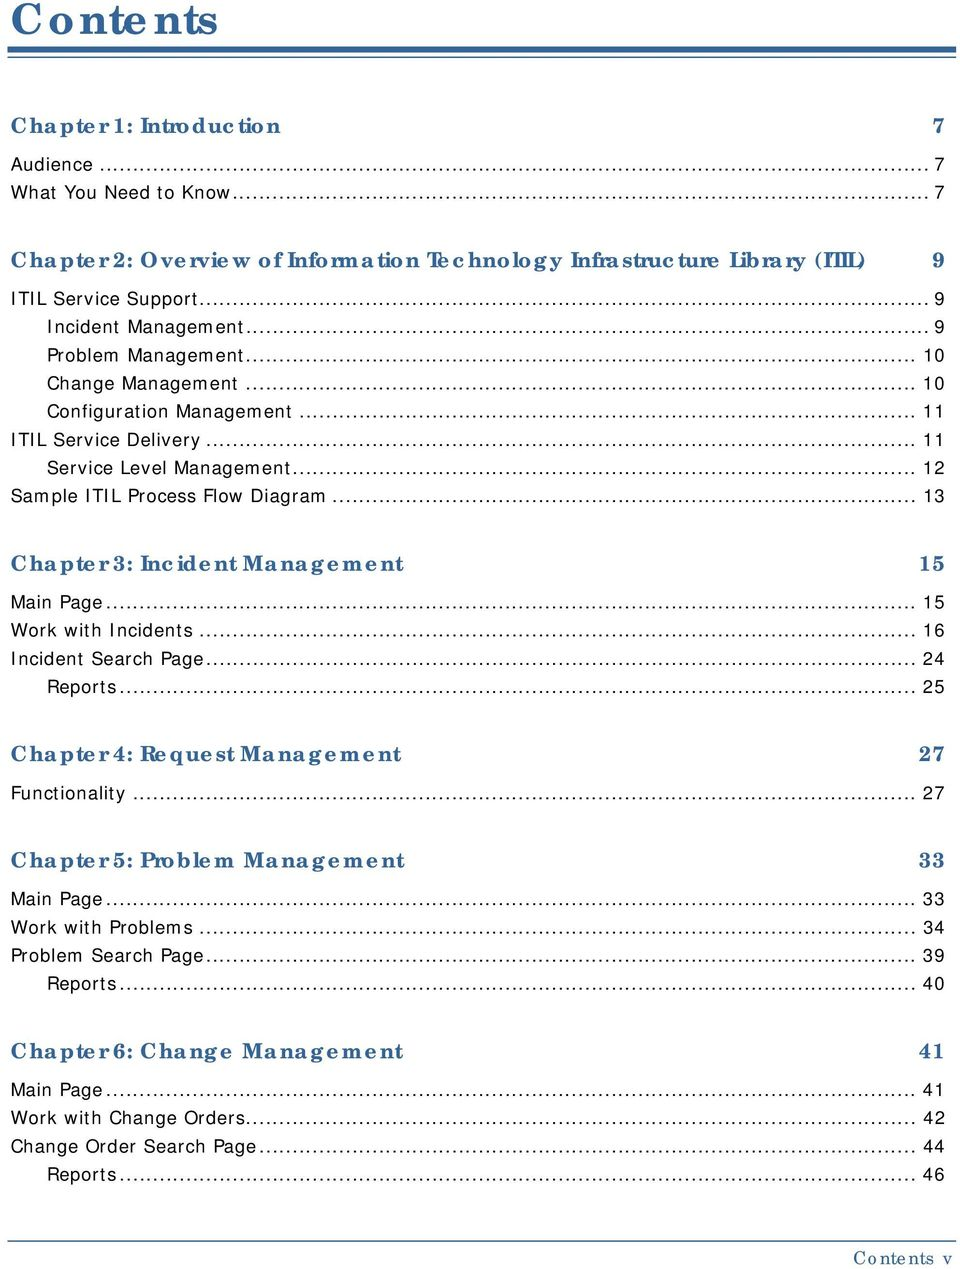 .. 13 Chapter 3: Incident Management 15 Main Page... 15 Work with Incidents... 16 Incident Search Page... 24 Reports... 25 Chapter 4: Request Management 27 Functionality.